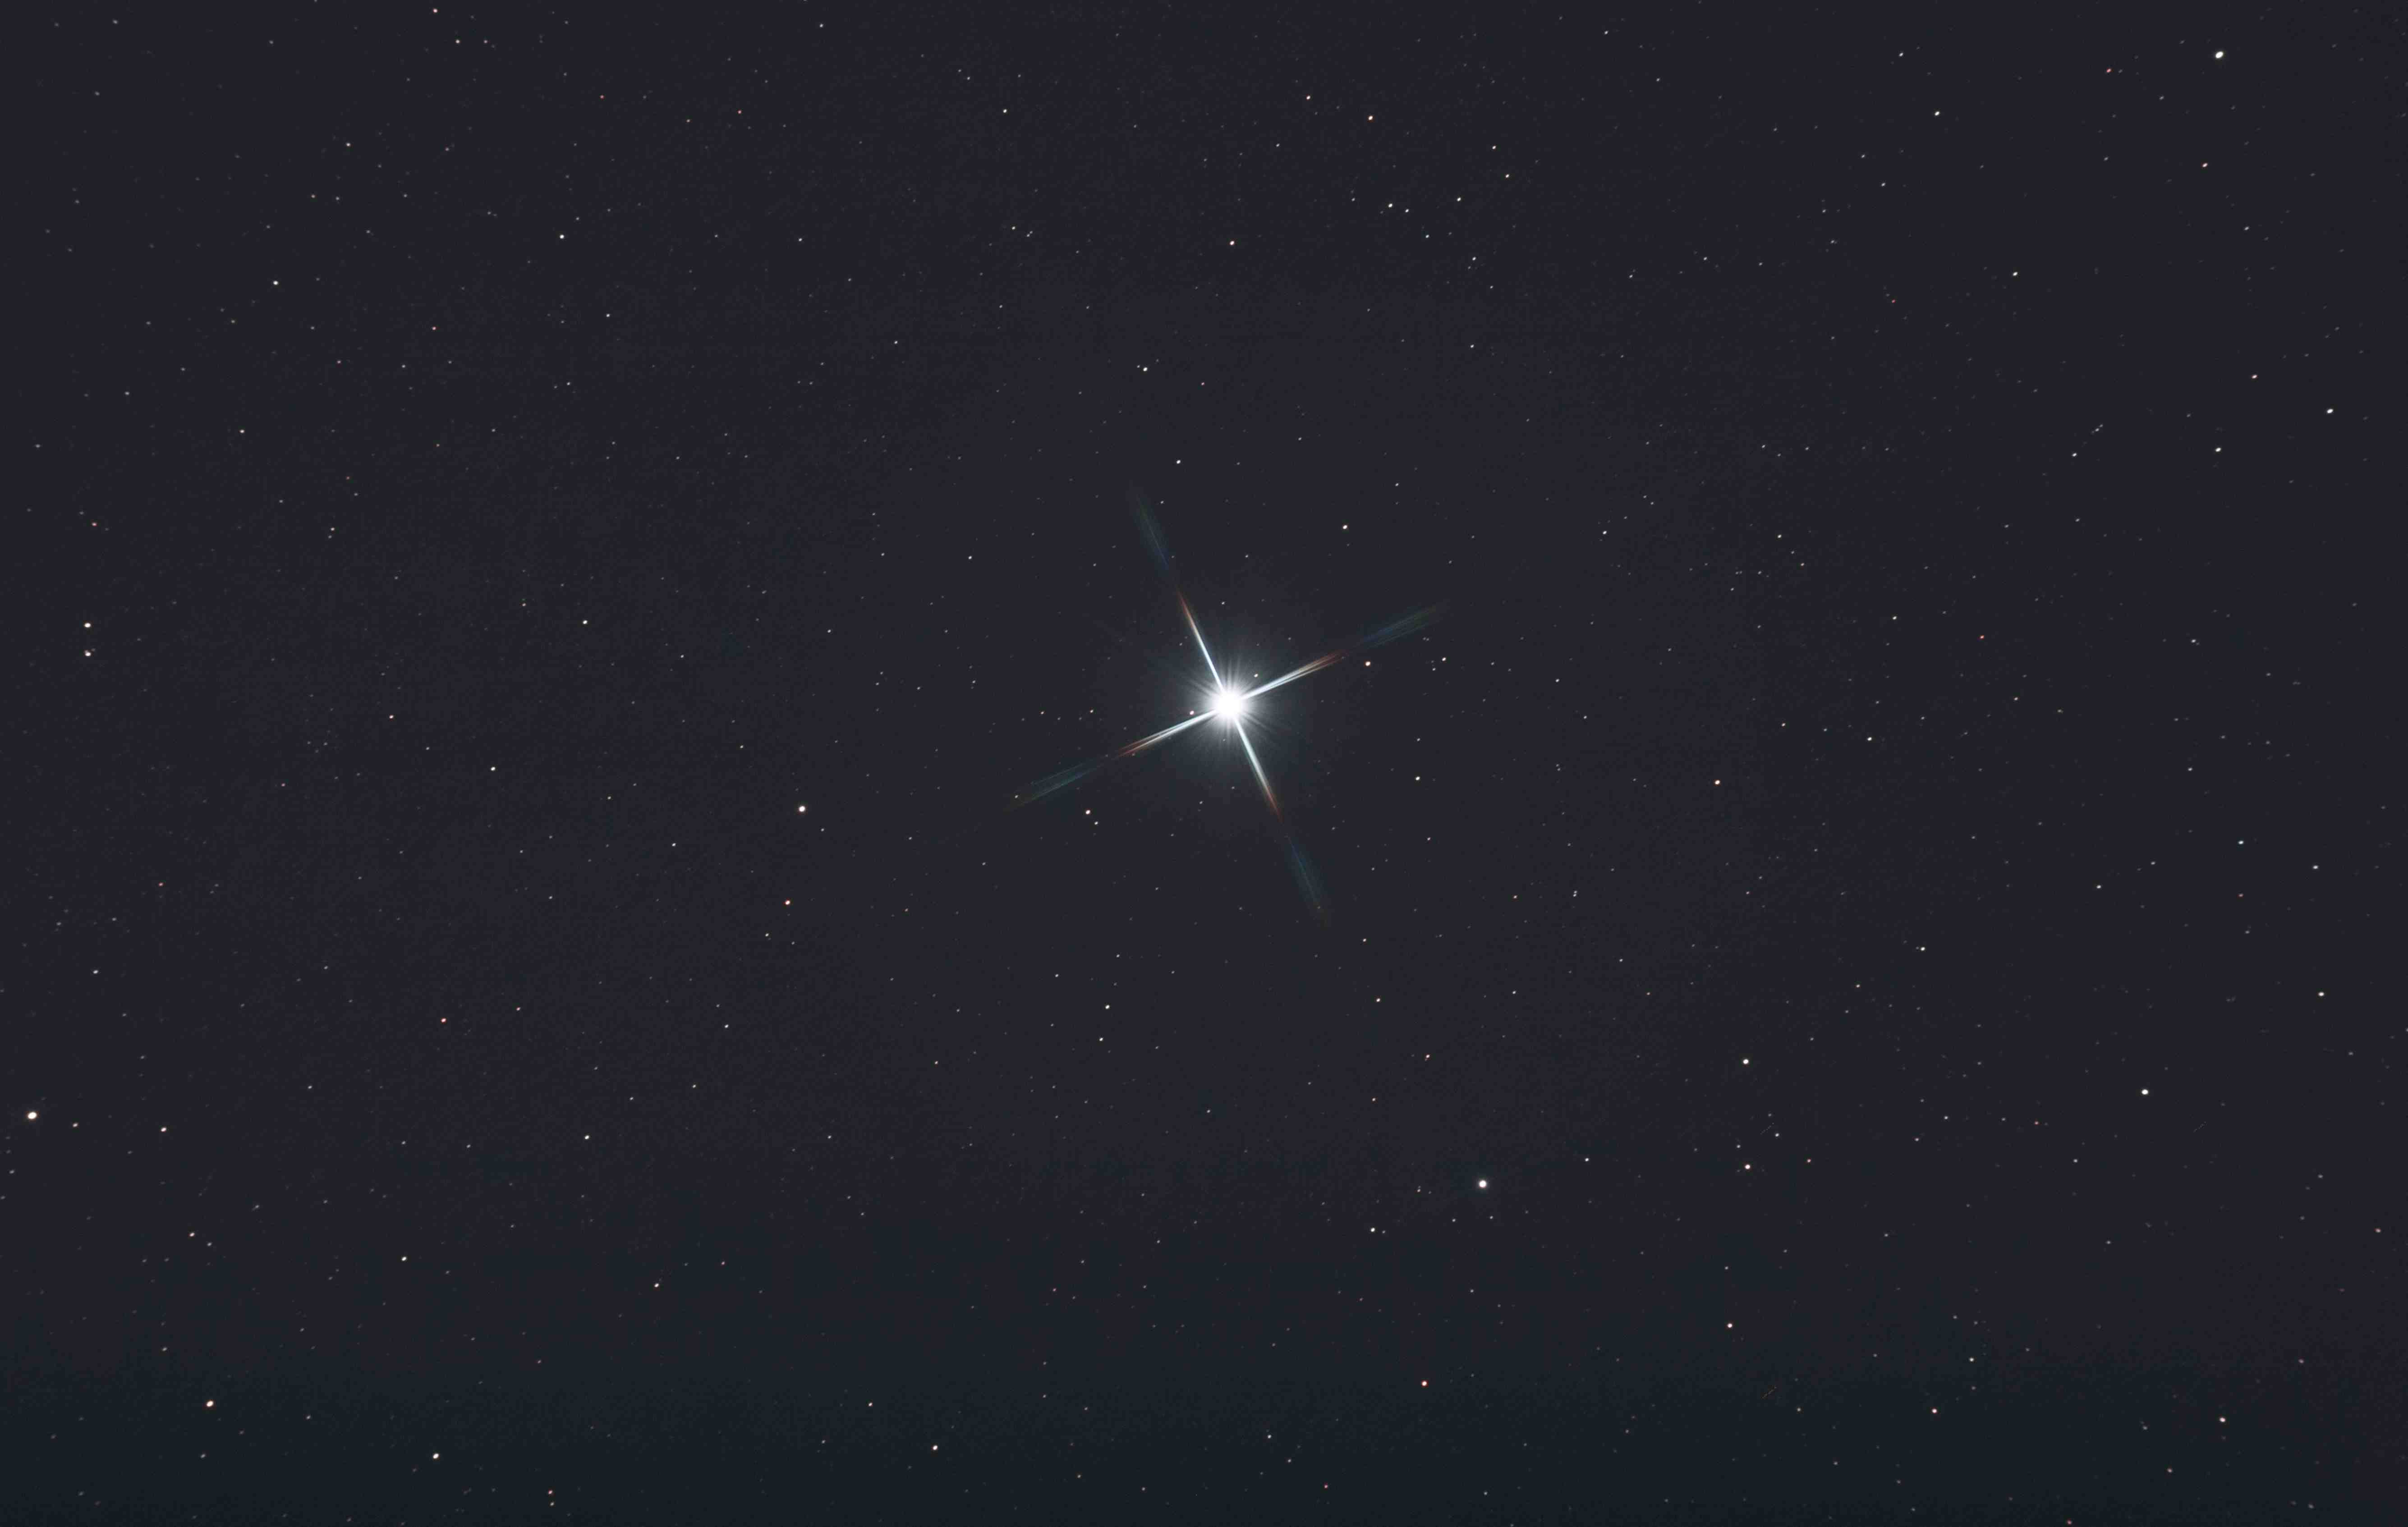 Vega is the brightest star of the constellation Lyra.